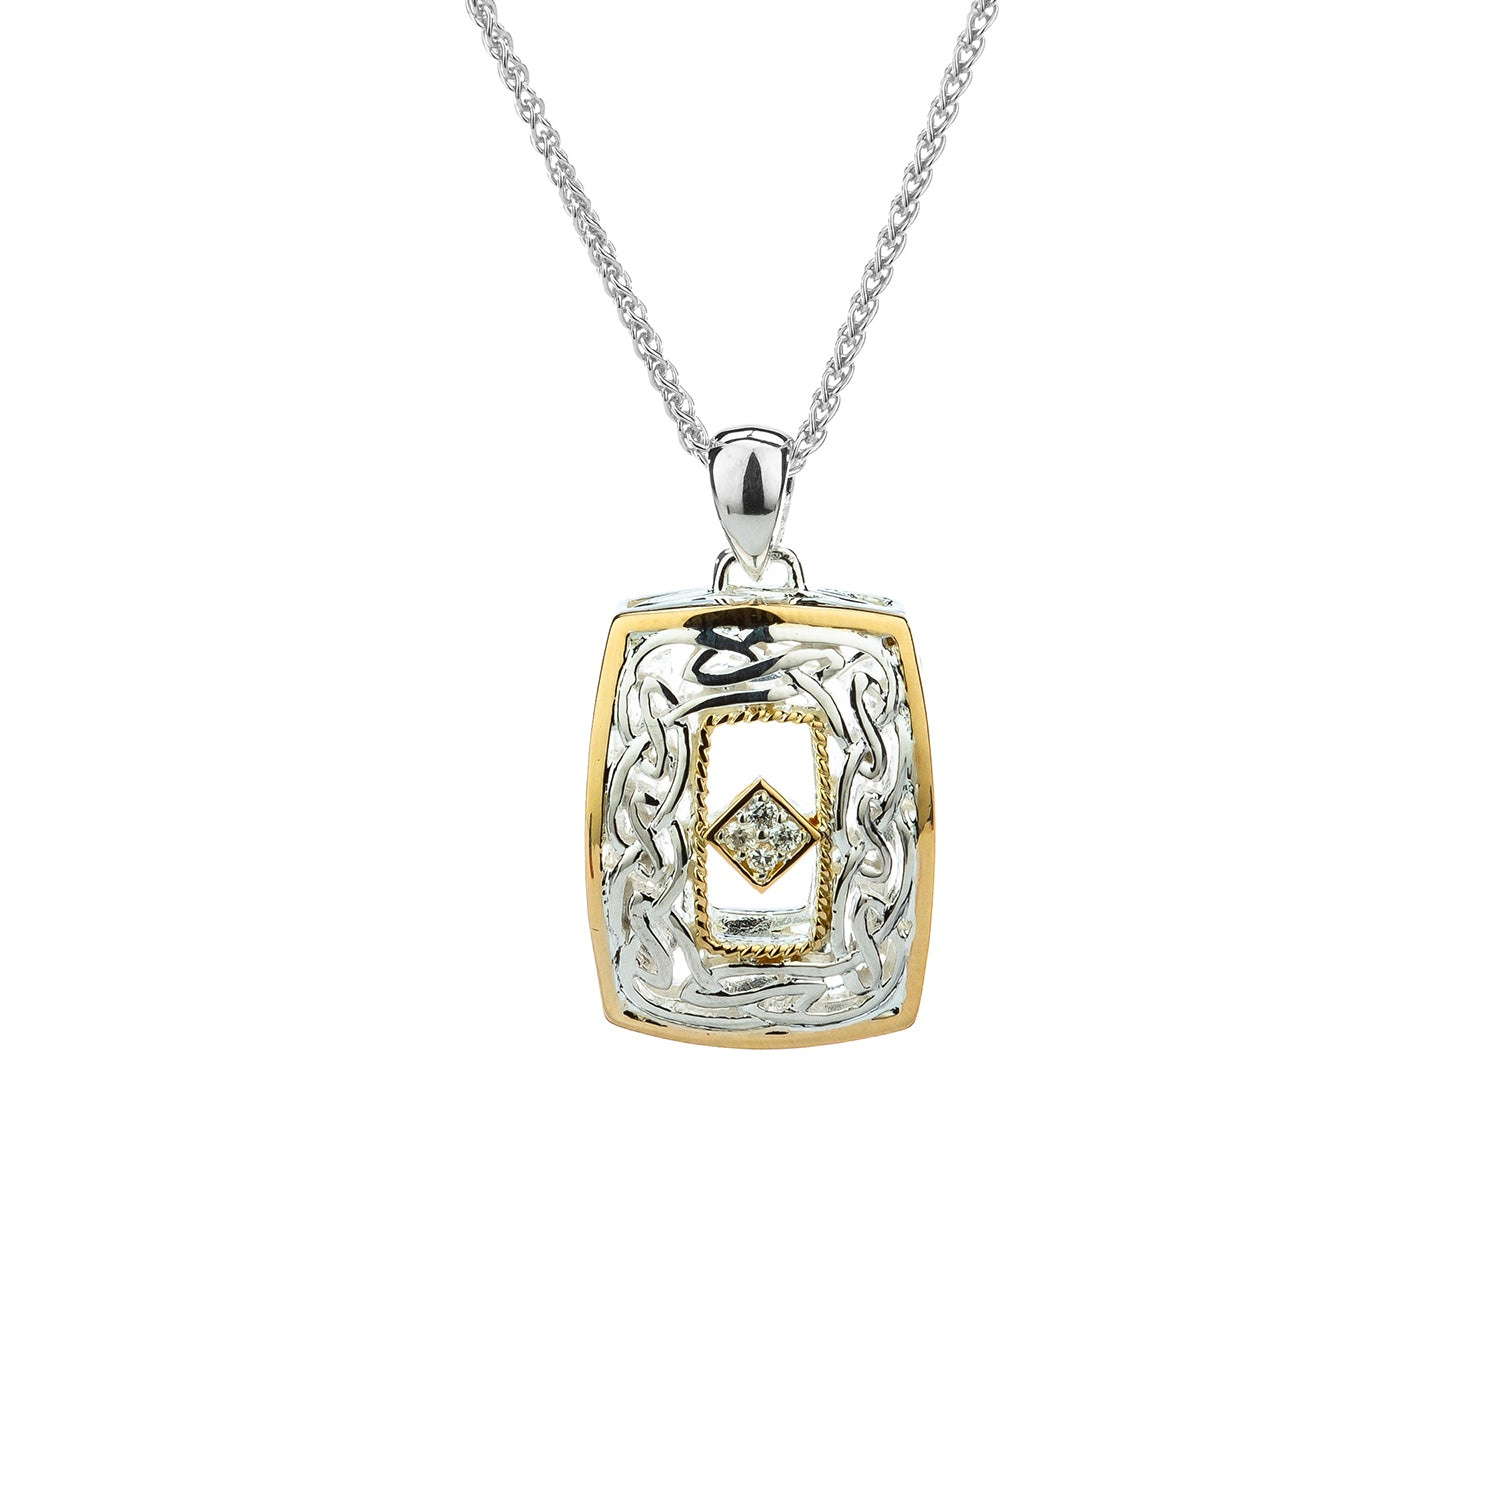 Pendant 10k Window to the Soul Diamond (TW 0.06ct) Pendant from welch and company jewelers near syracuse ny